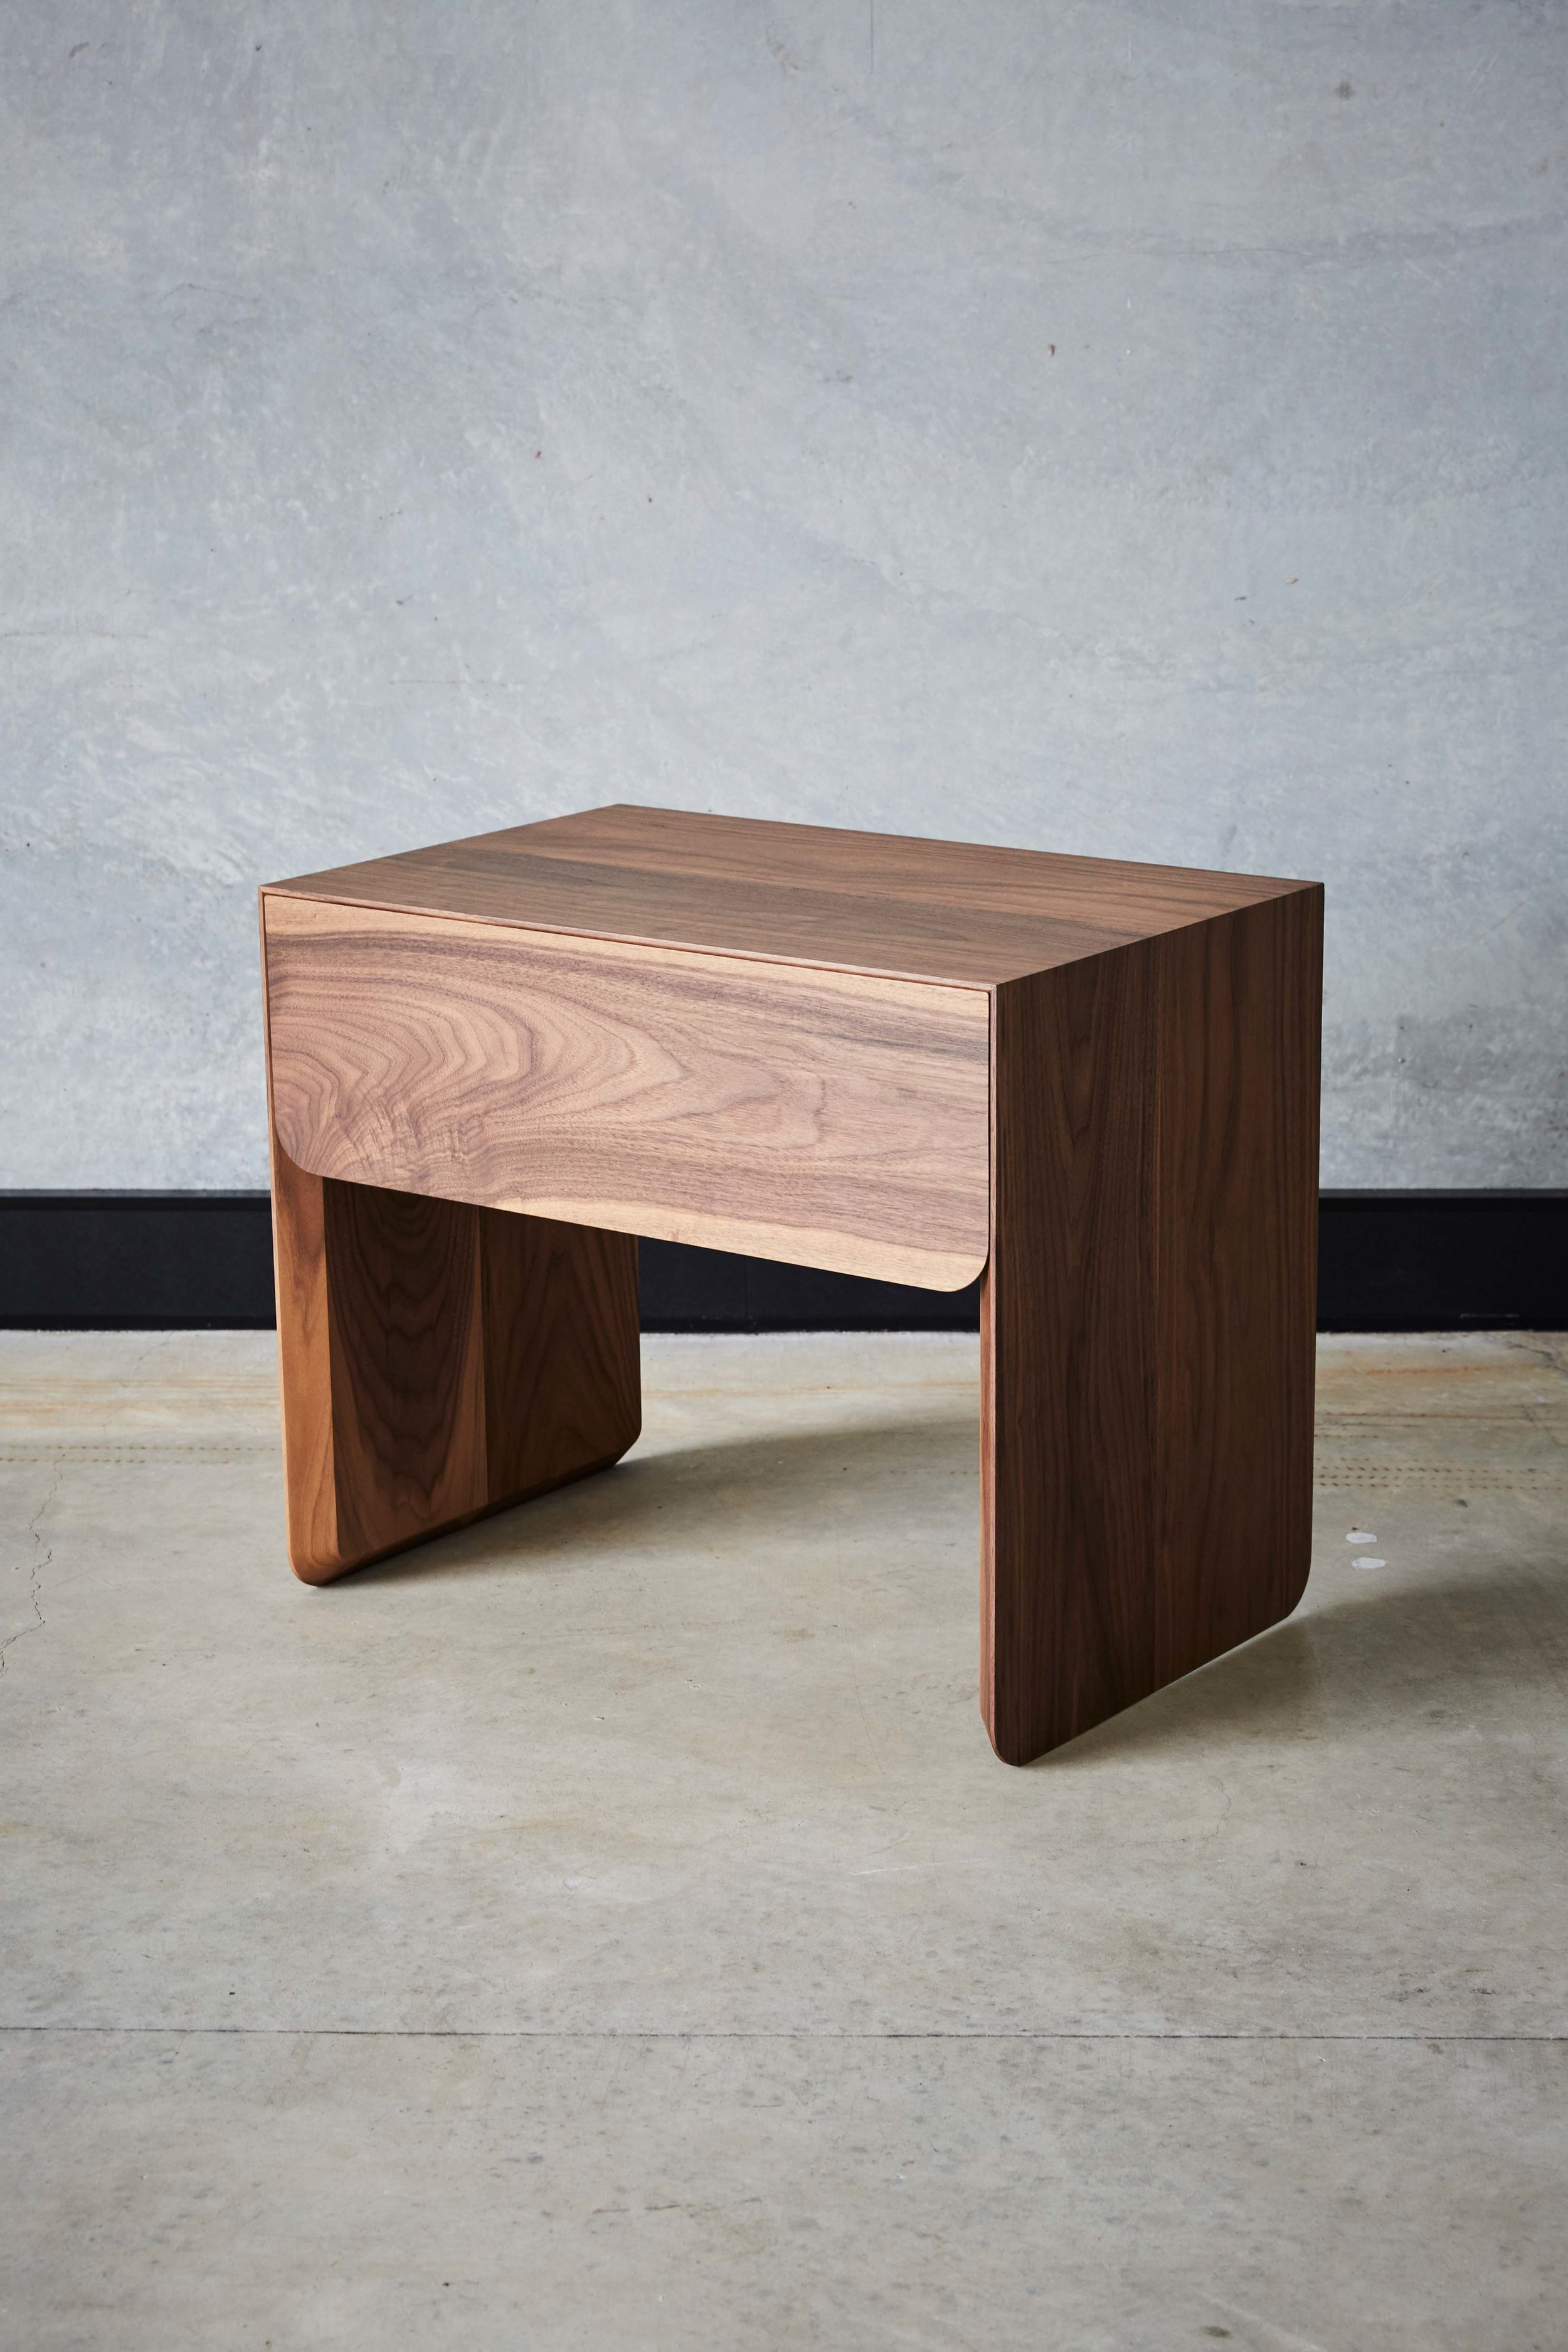 Tacey bedside tables by Mast Furniture. Modern, handmade furniture.